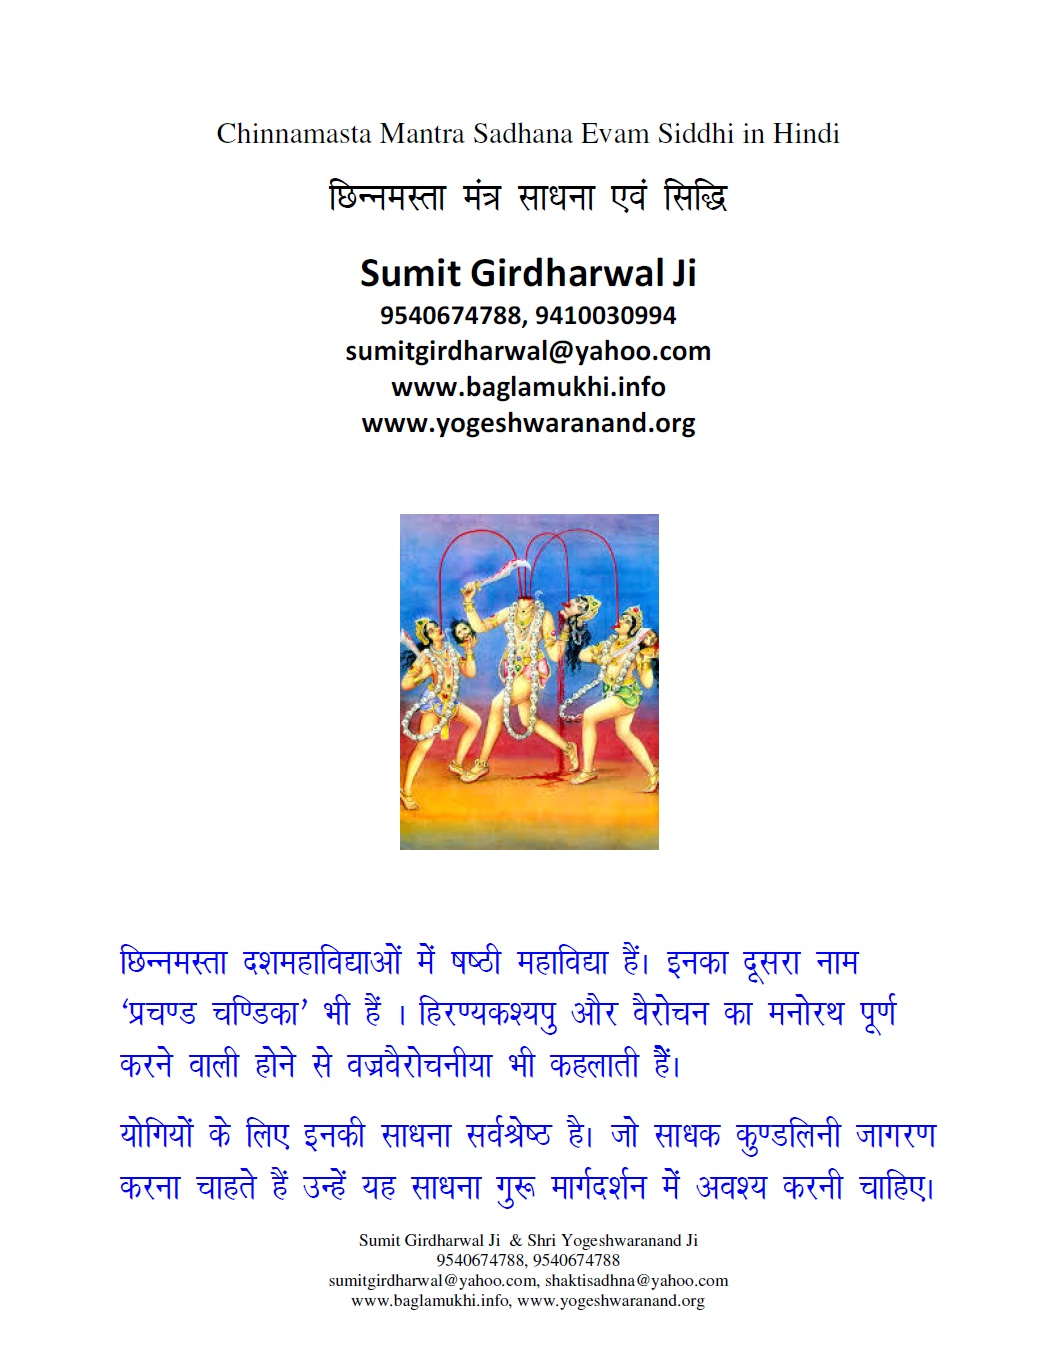 Chinnamasta Mantra Archives - Secret of Mantra Tantra